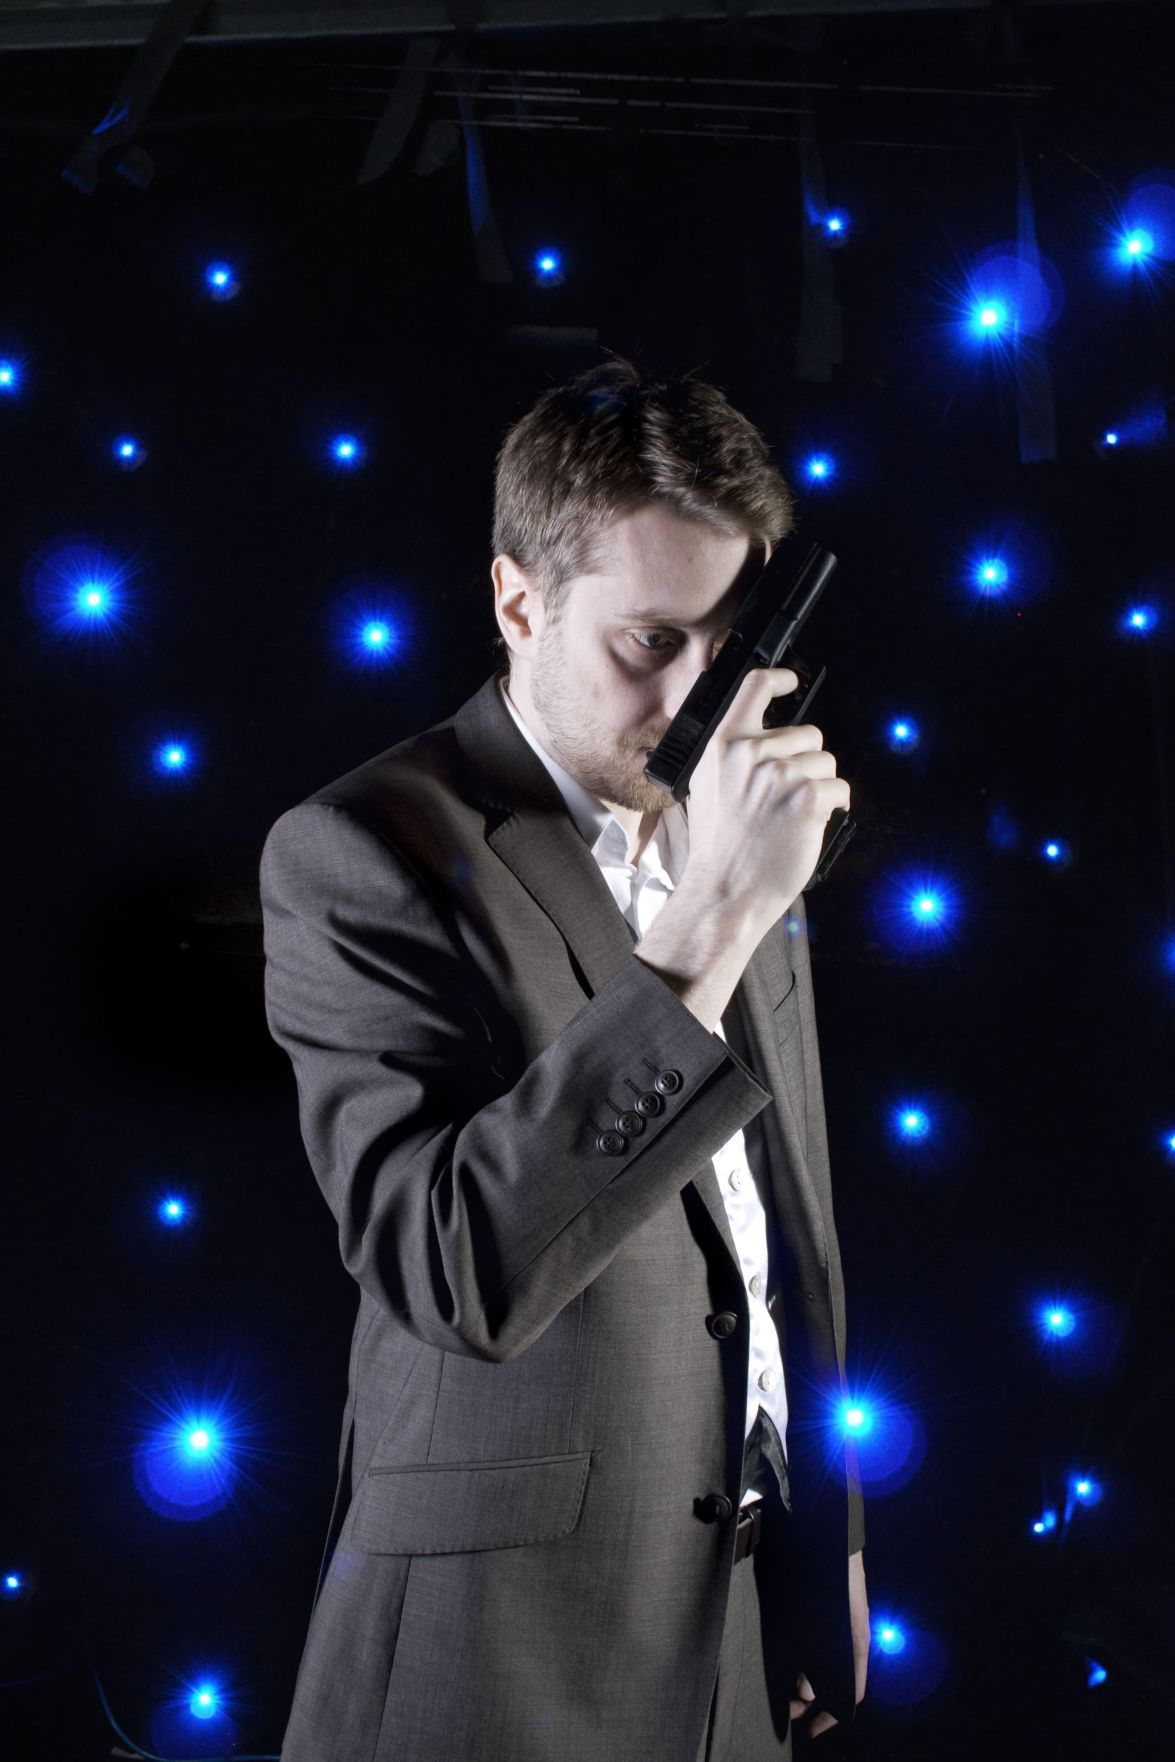 Magical 'Bullet Catch' enraptures audience